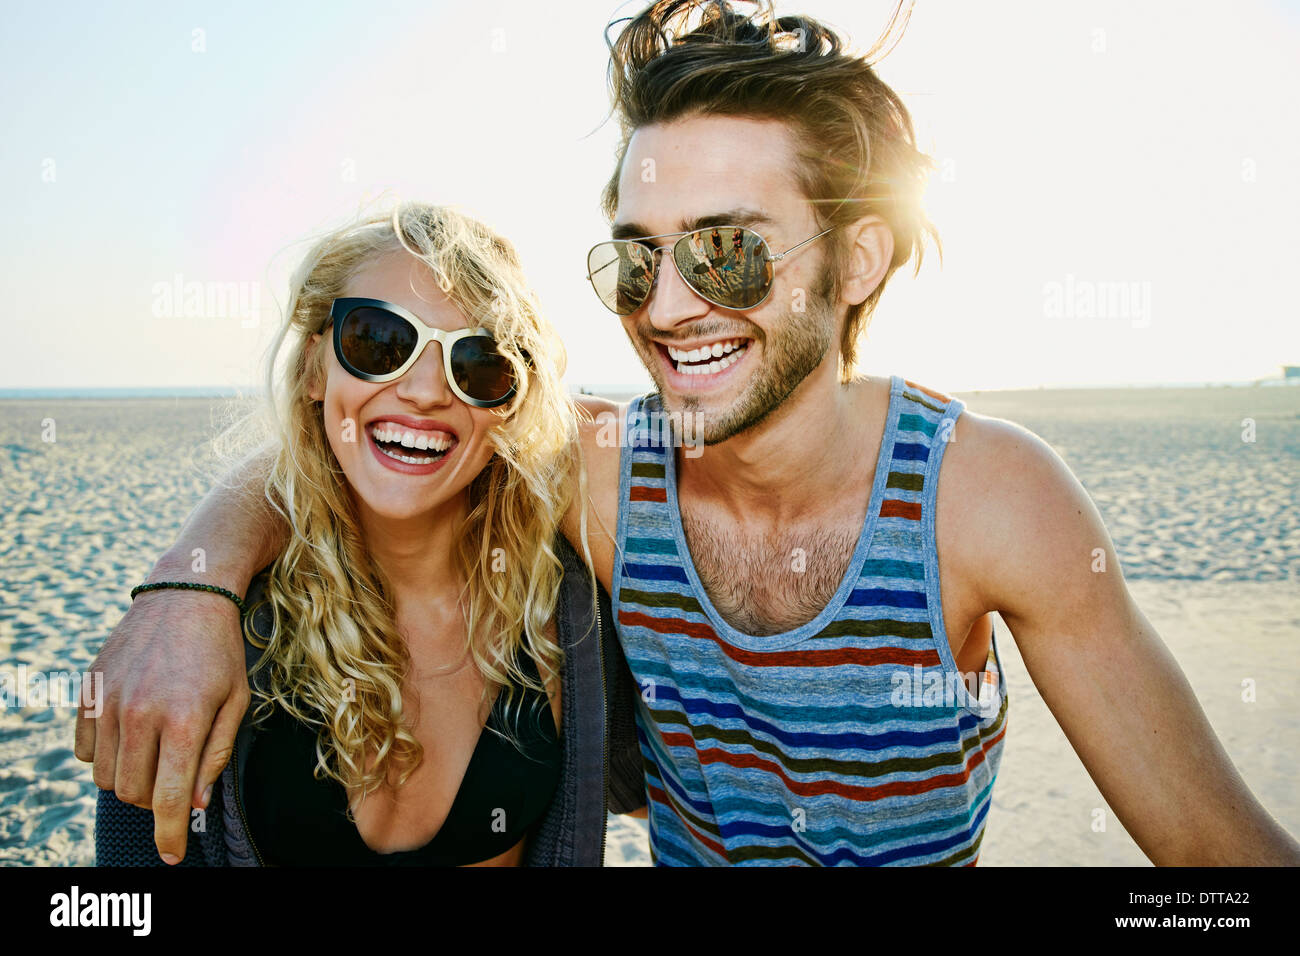 Couple smiling together on beach Stock Photo